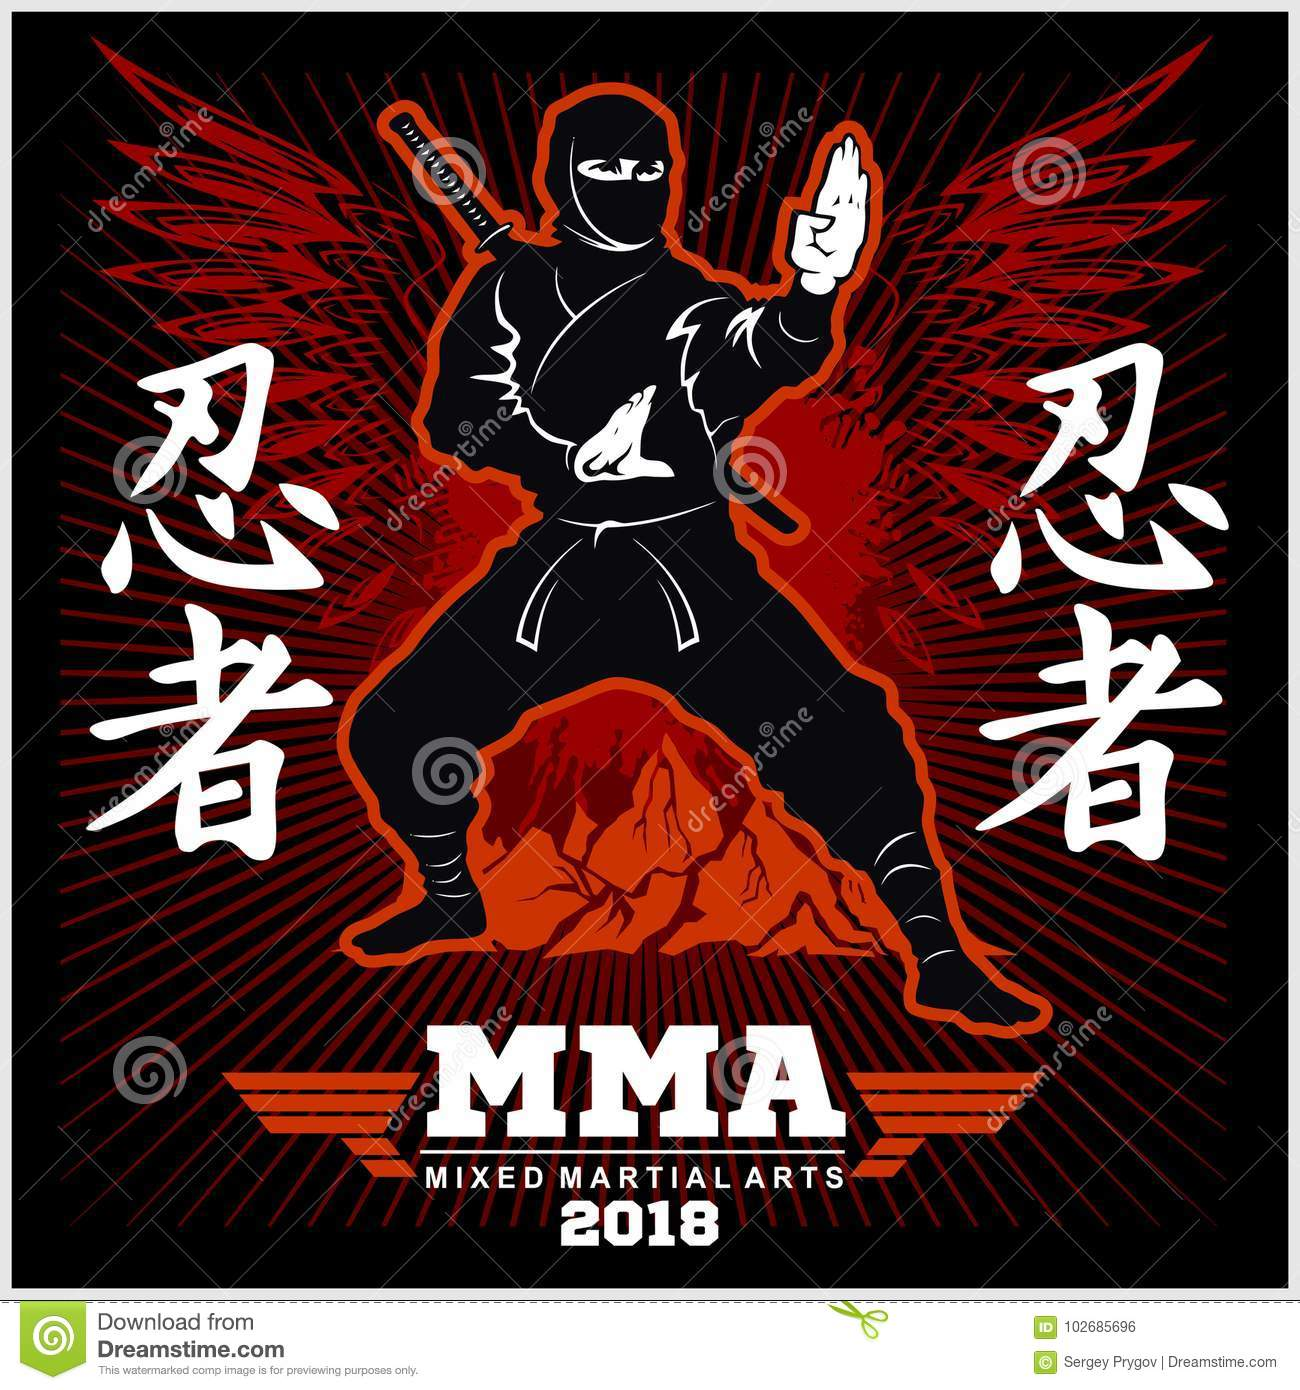 Ninja Warrior Fighter - Mixed Martial Art Stock Vector